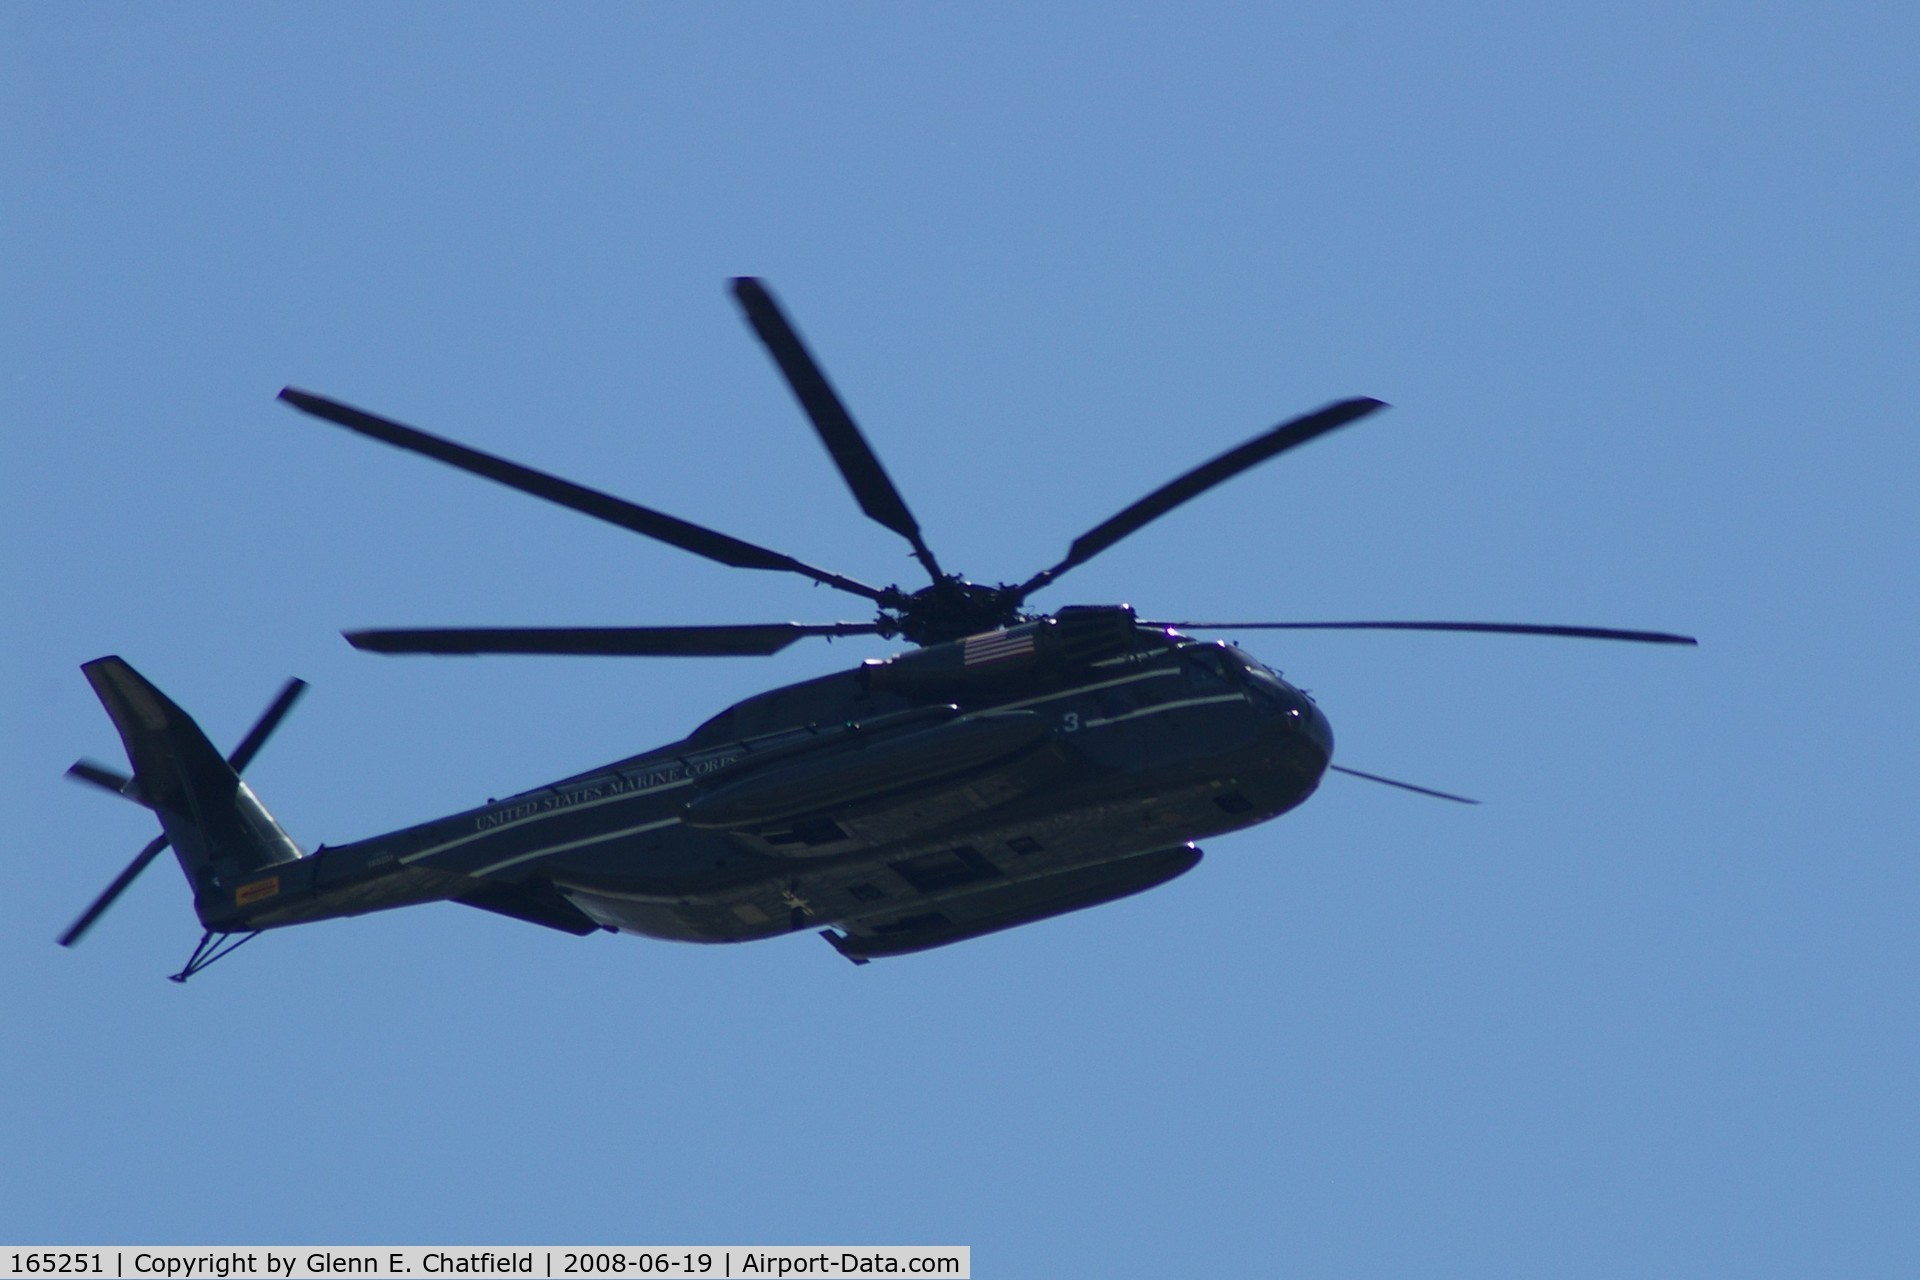 165251, Sikorsky CH-53E Super Stallion C/N 65-645, Flying over North Liberty, IA as part of Presidential fleet.